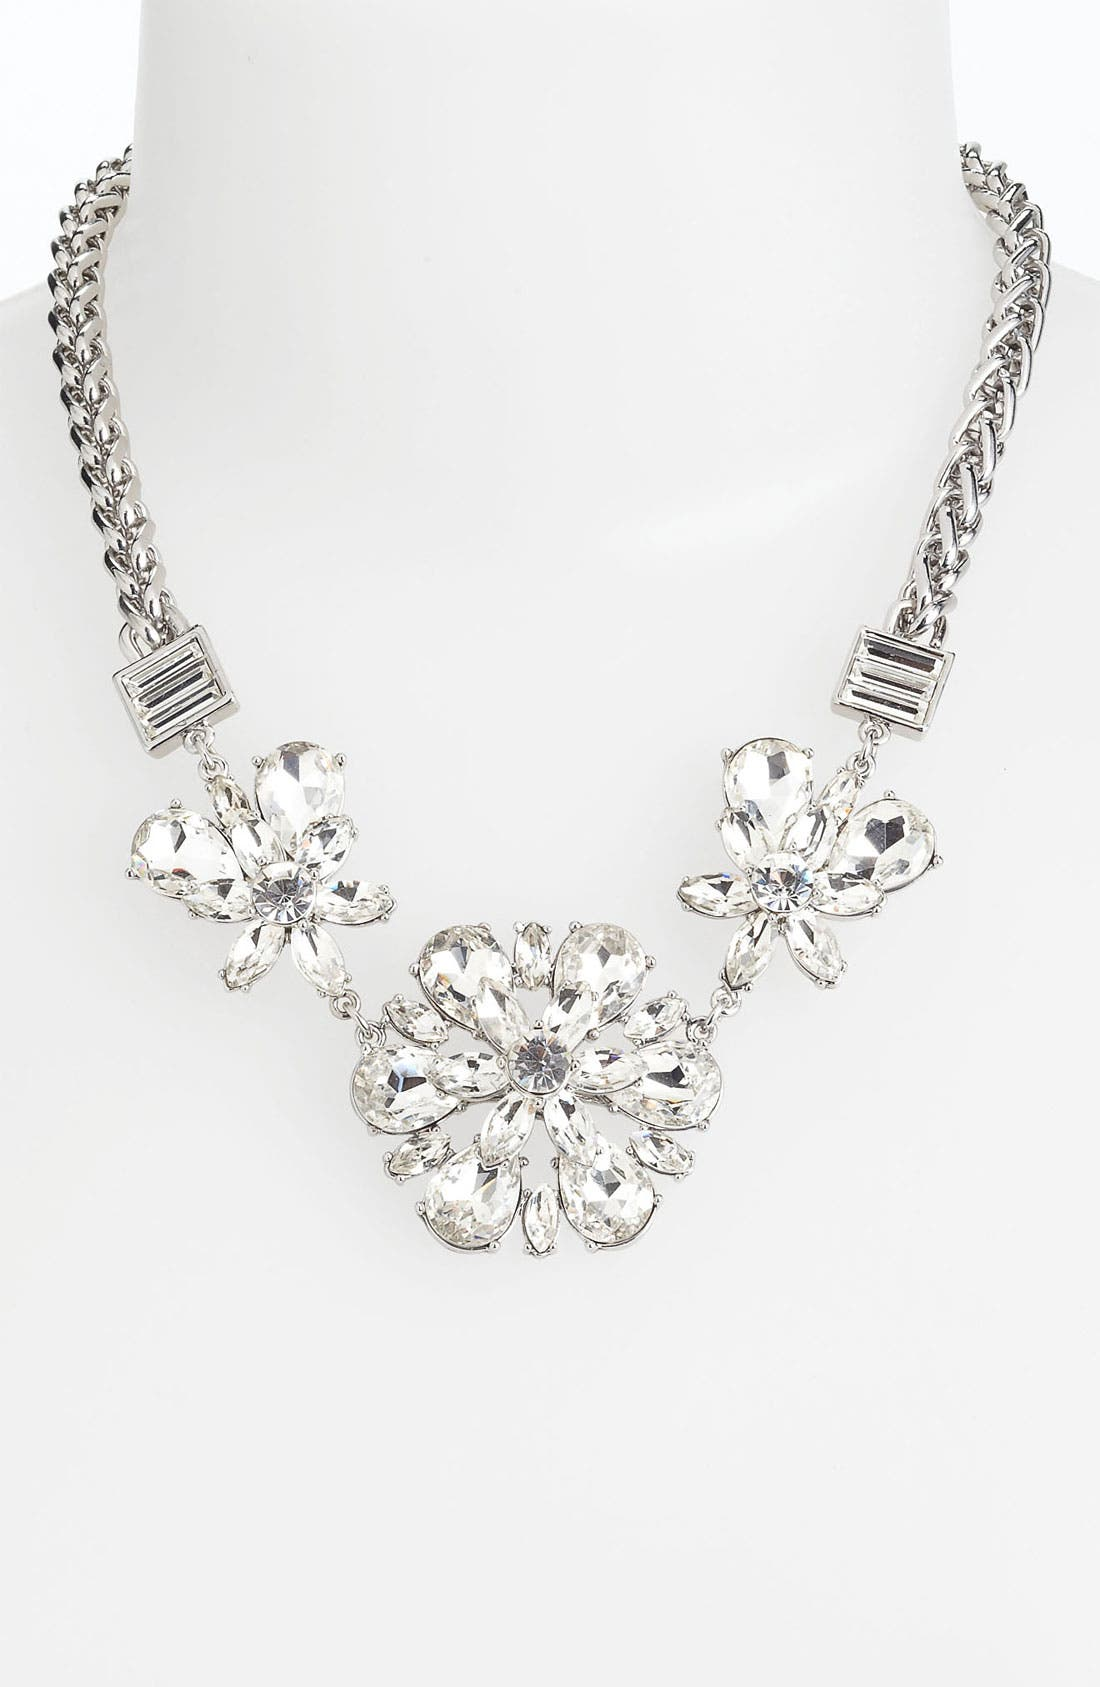 Main Image - kate spade new york 'electric gardens' frontal necklace